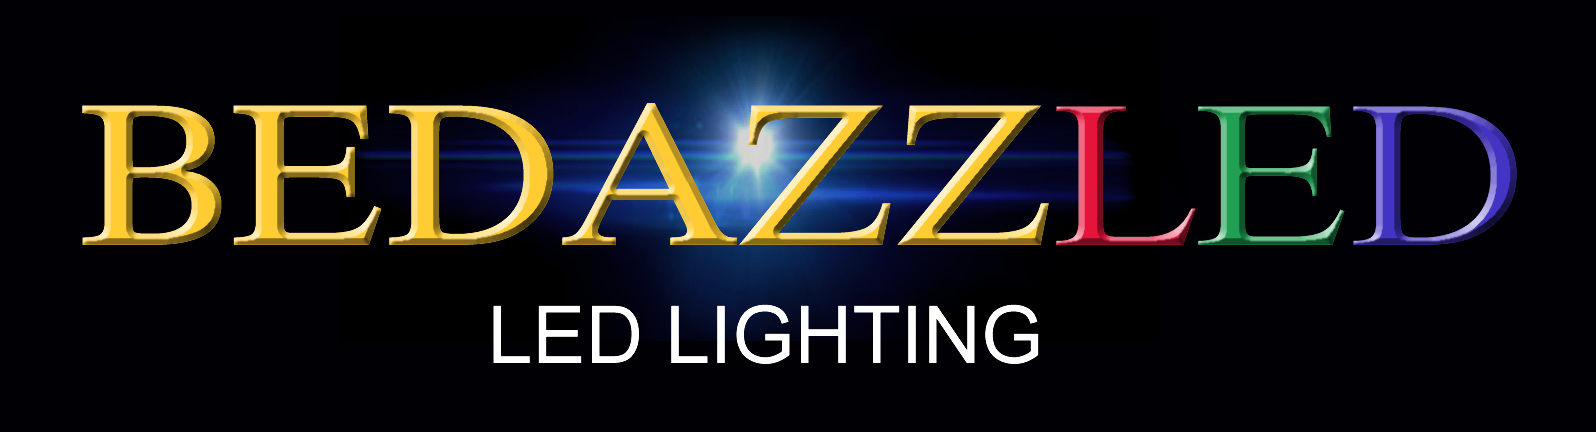 Bedazzled LED Lighting Logo